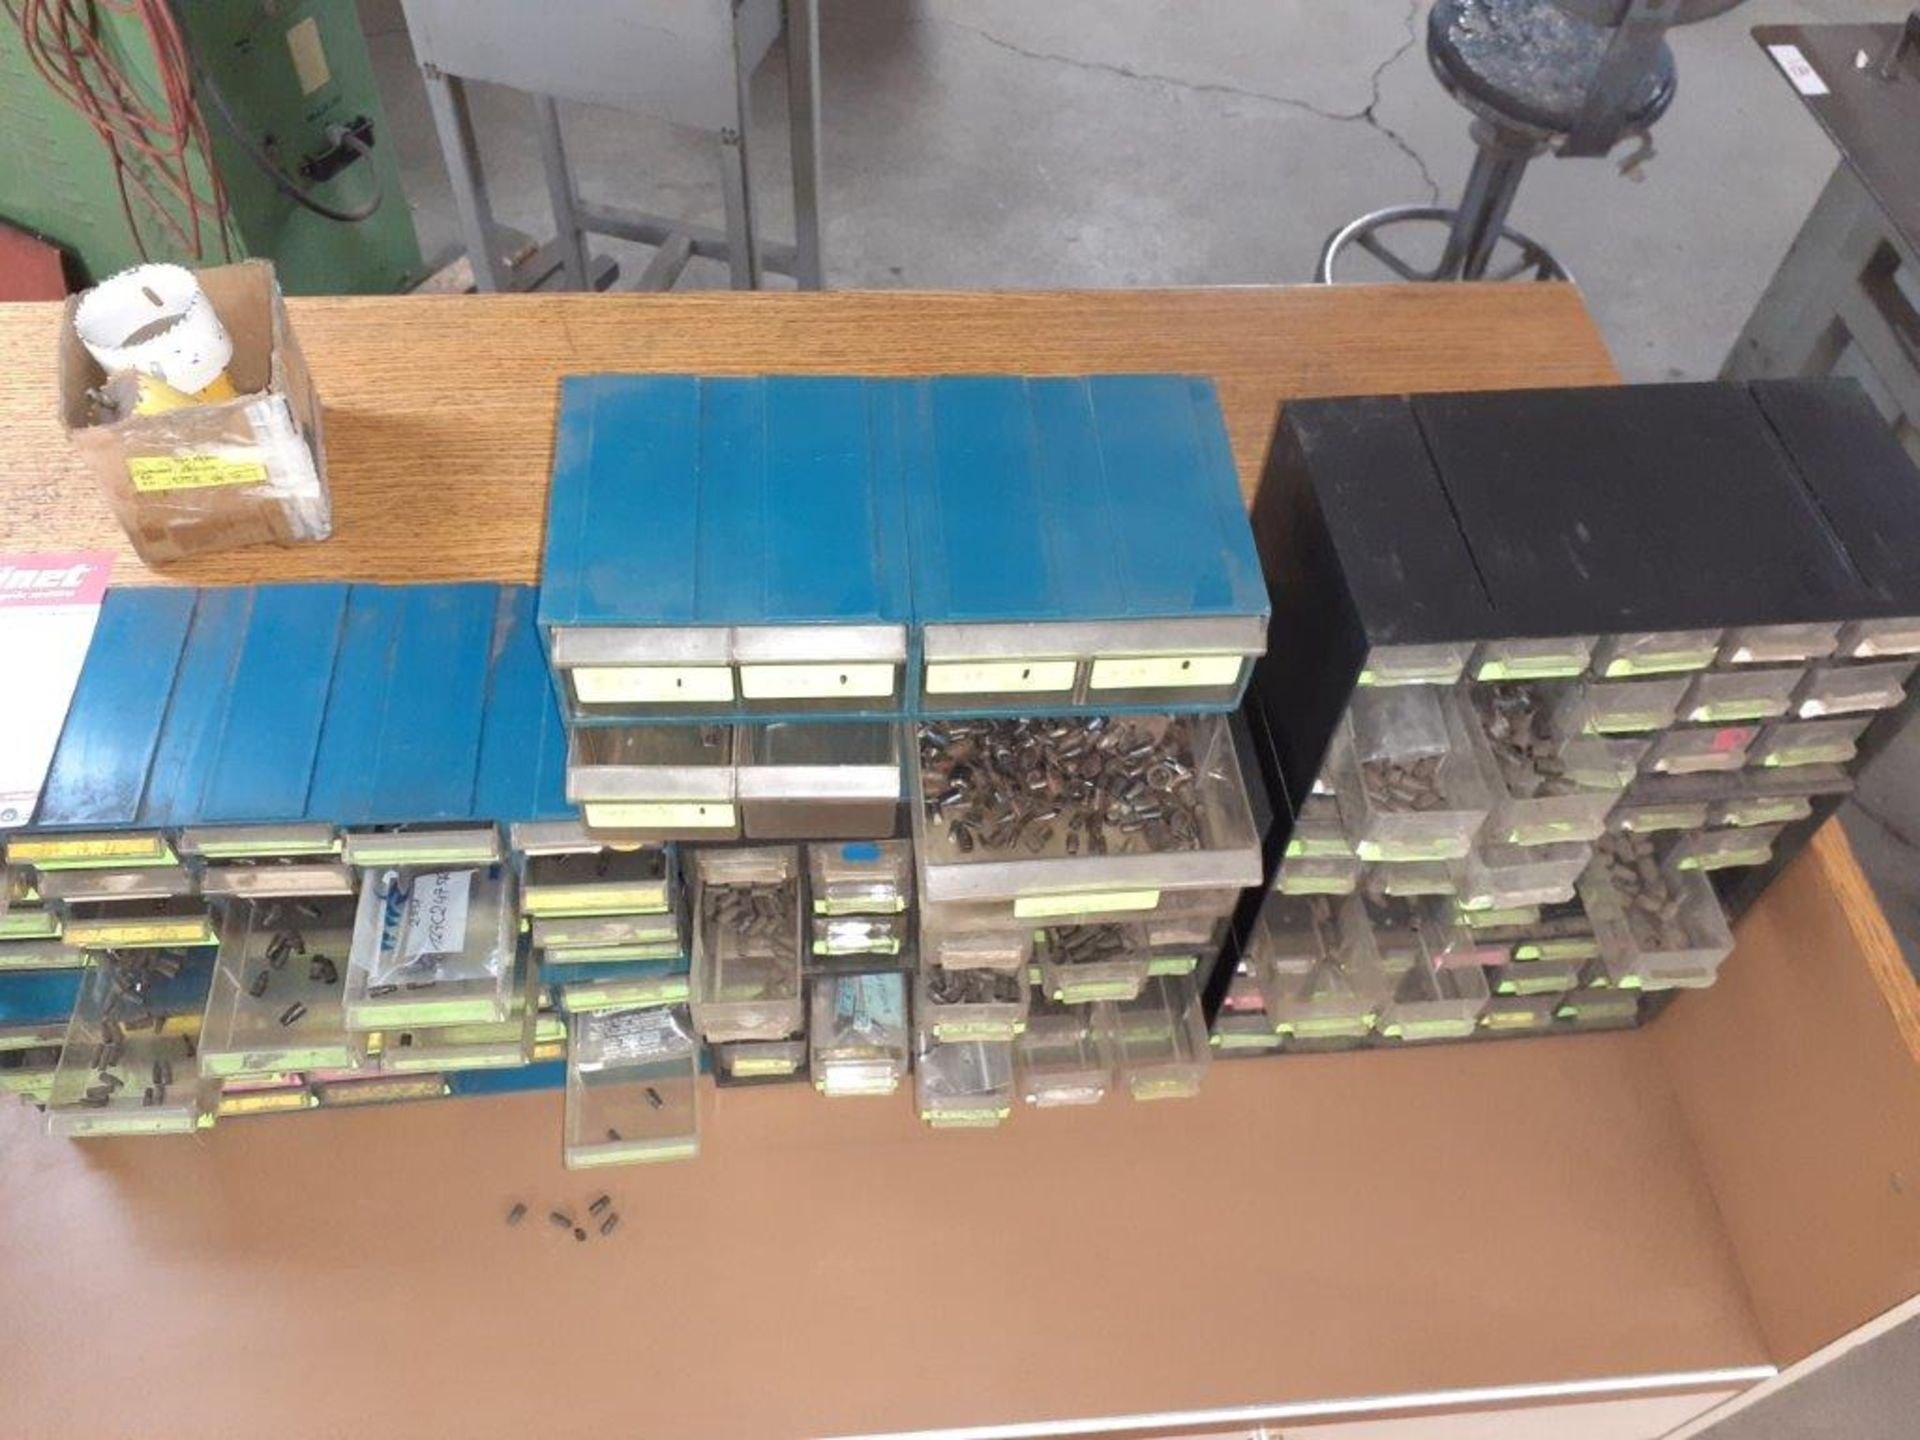 Complete Sets of WEISER GHBH Perforating Round & Fancy Punches: 45,000+ pcs. Market Value: $90,000 - Image 15 of 29